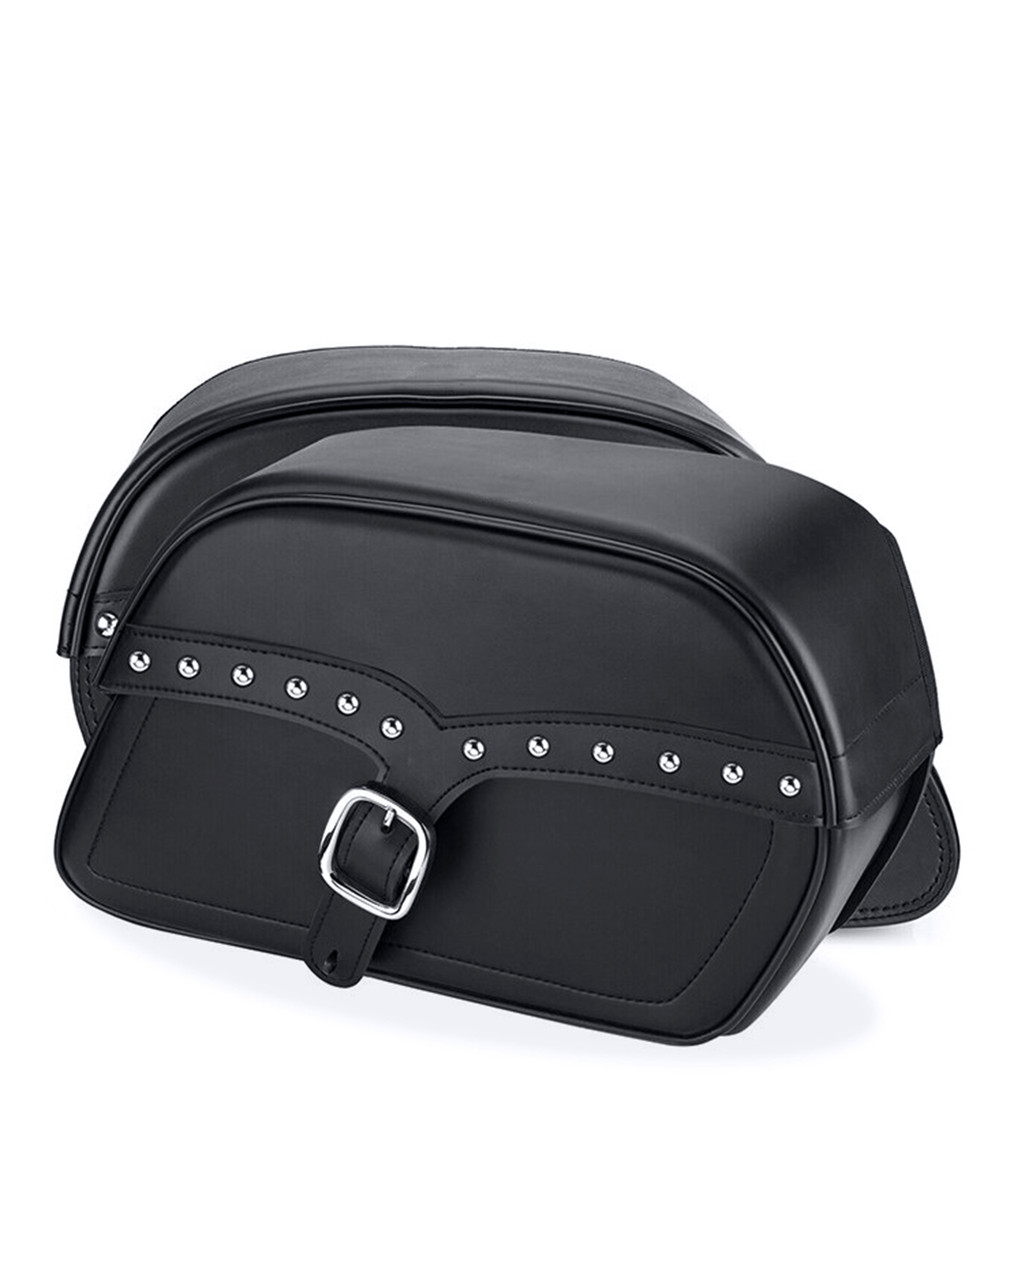 Honda 1500 Valkyrie Interstate SS Slanted Studded Large Motorcycle Saddlebags Both Bags View